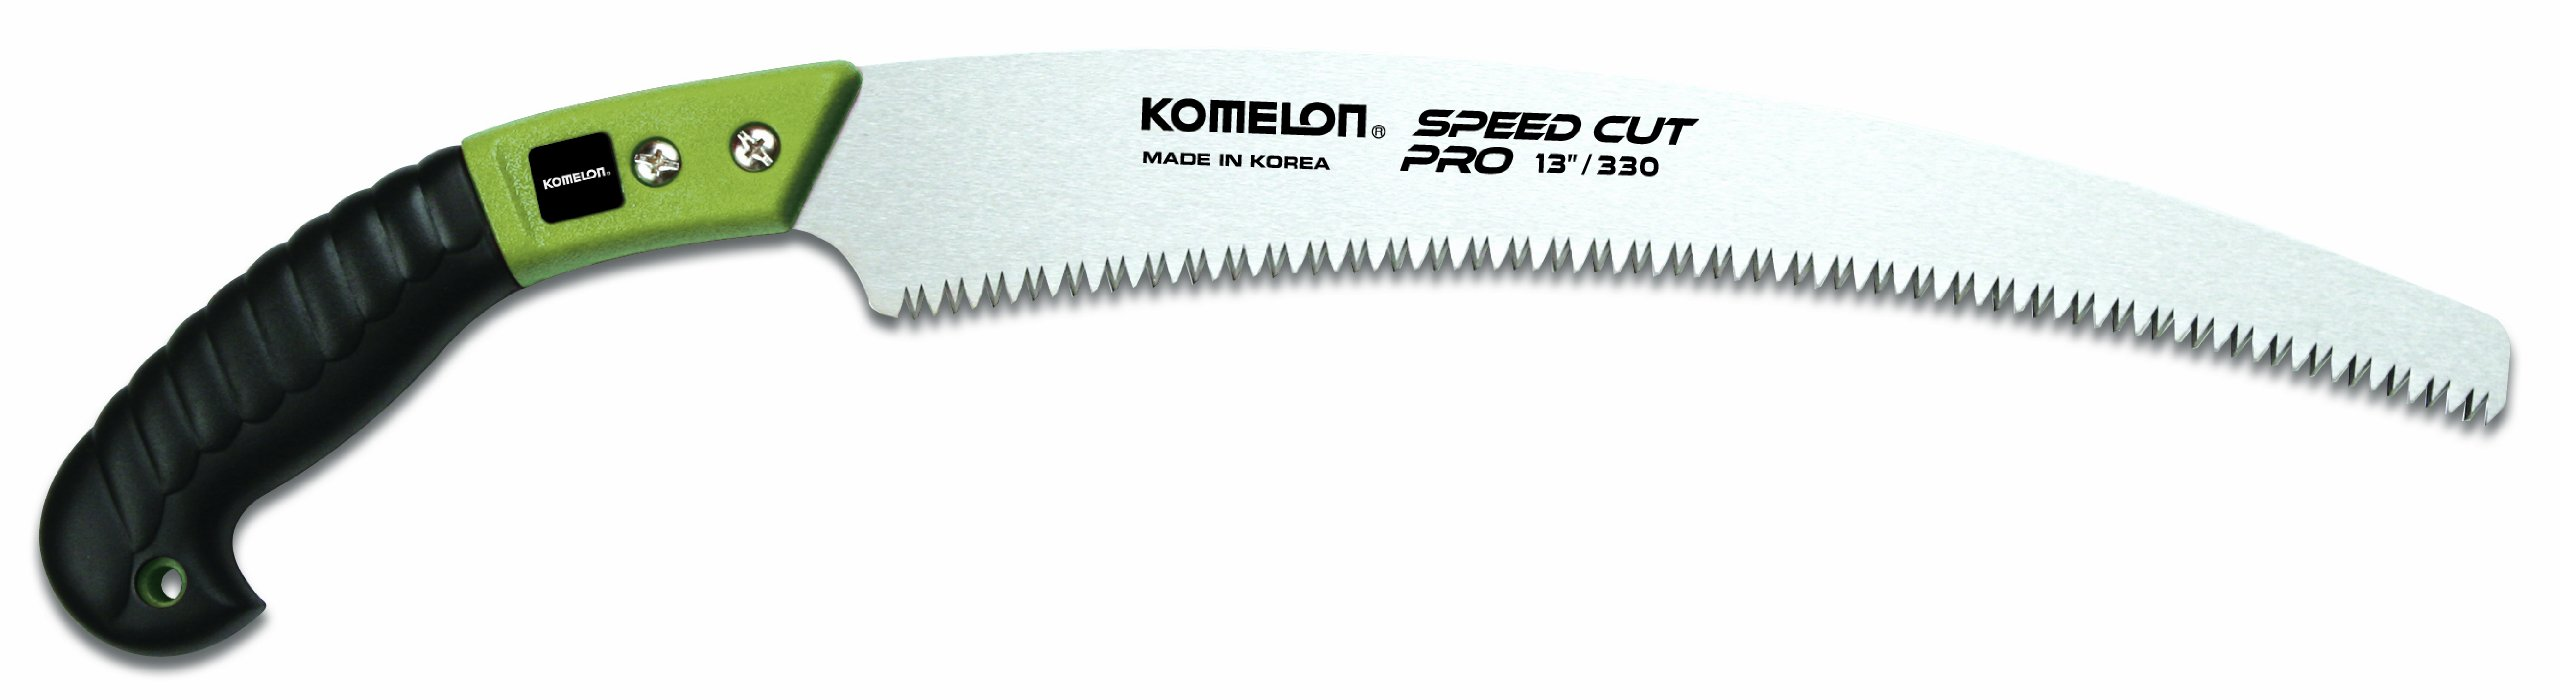 Komelon Speed Cut Pro Curved Pruning Saw, 13-Inch